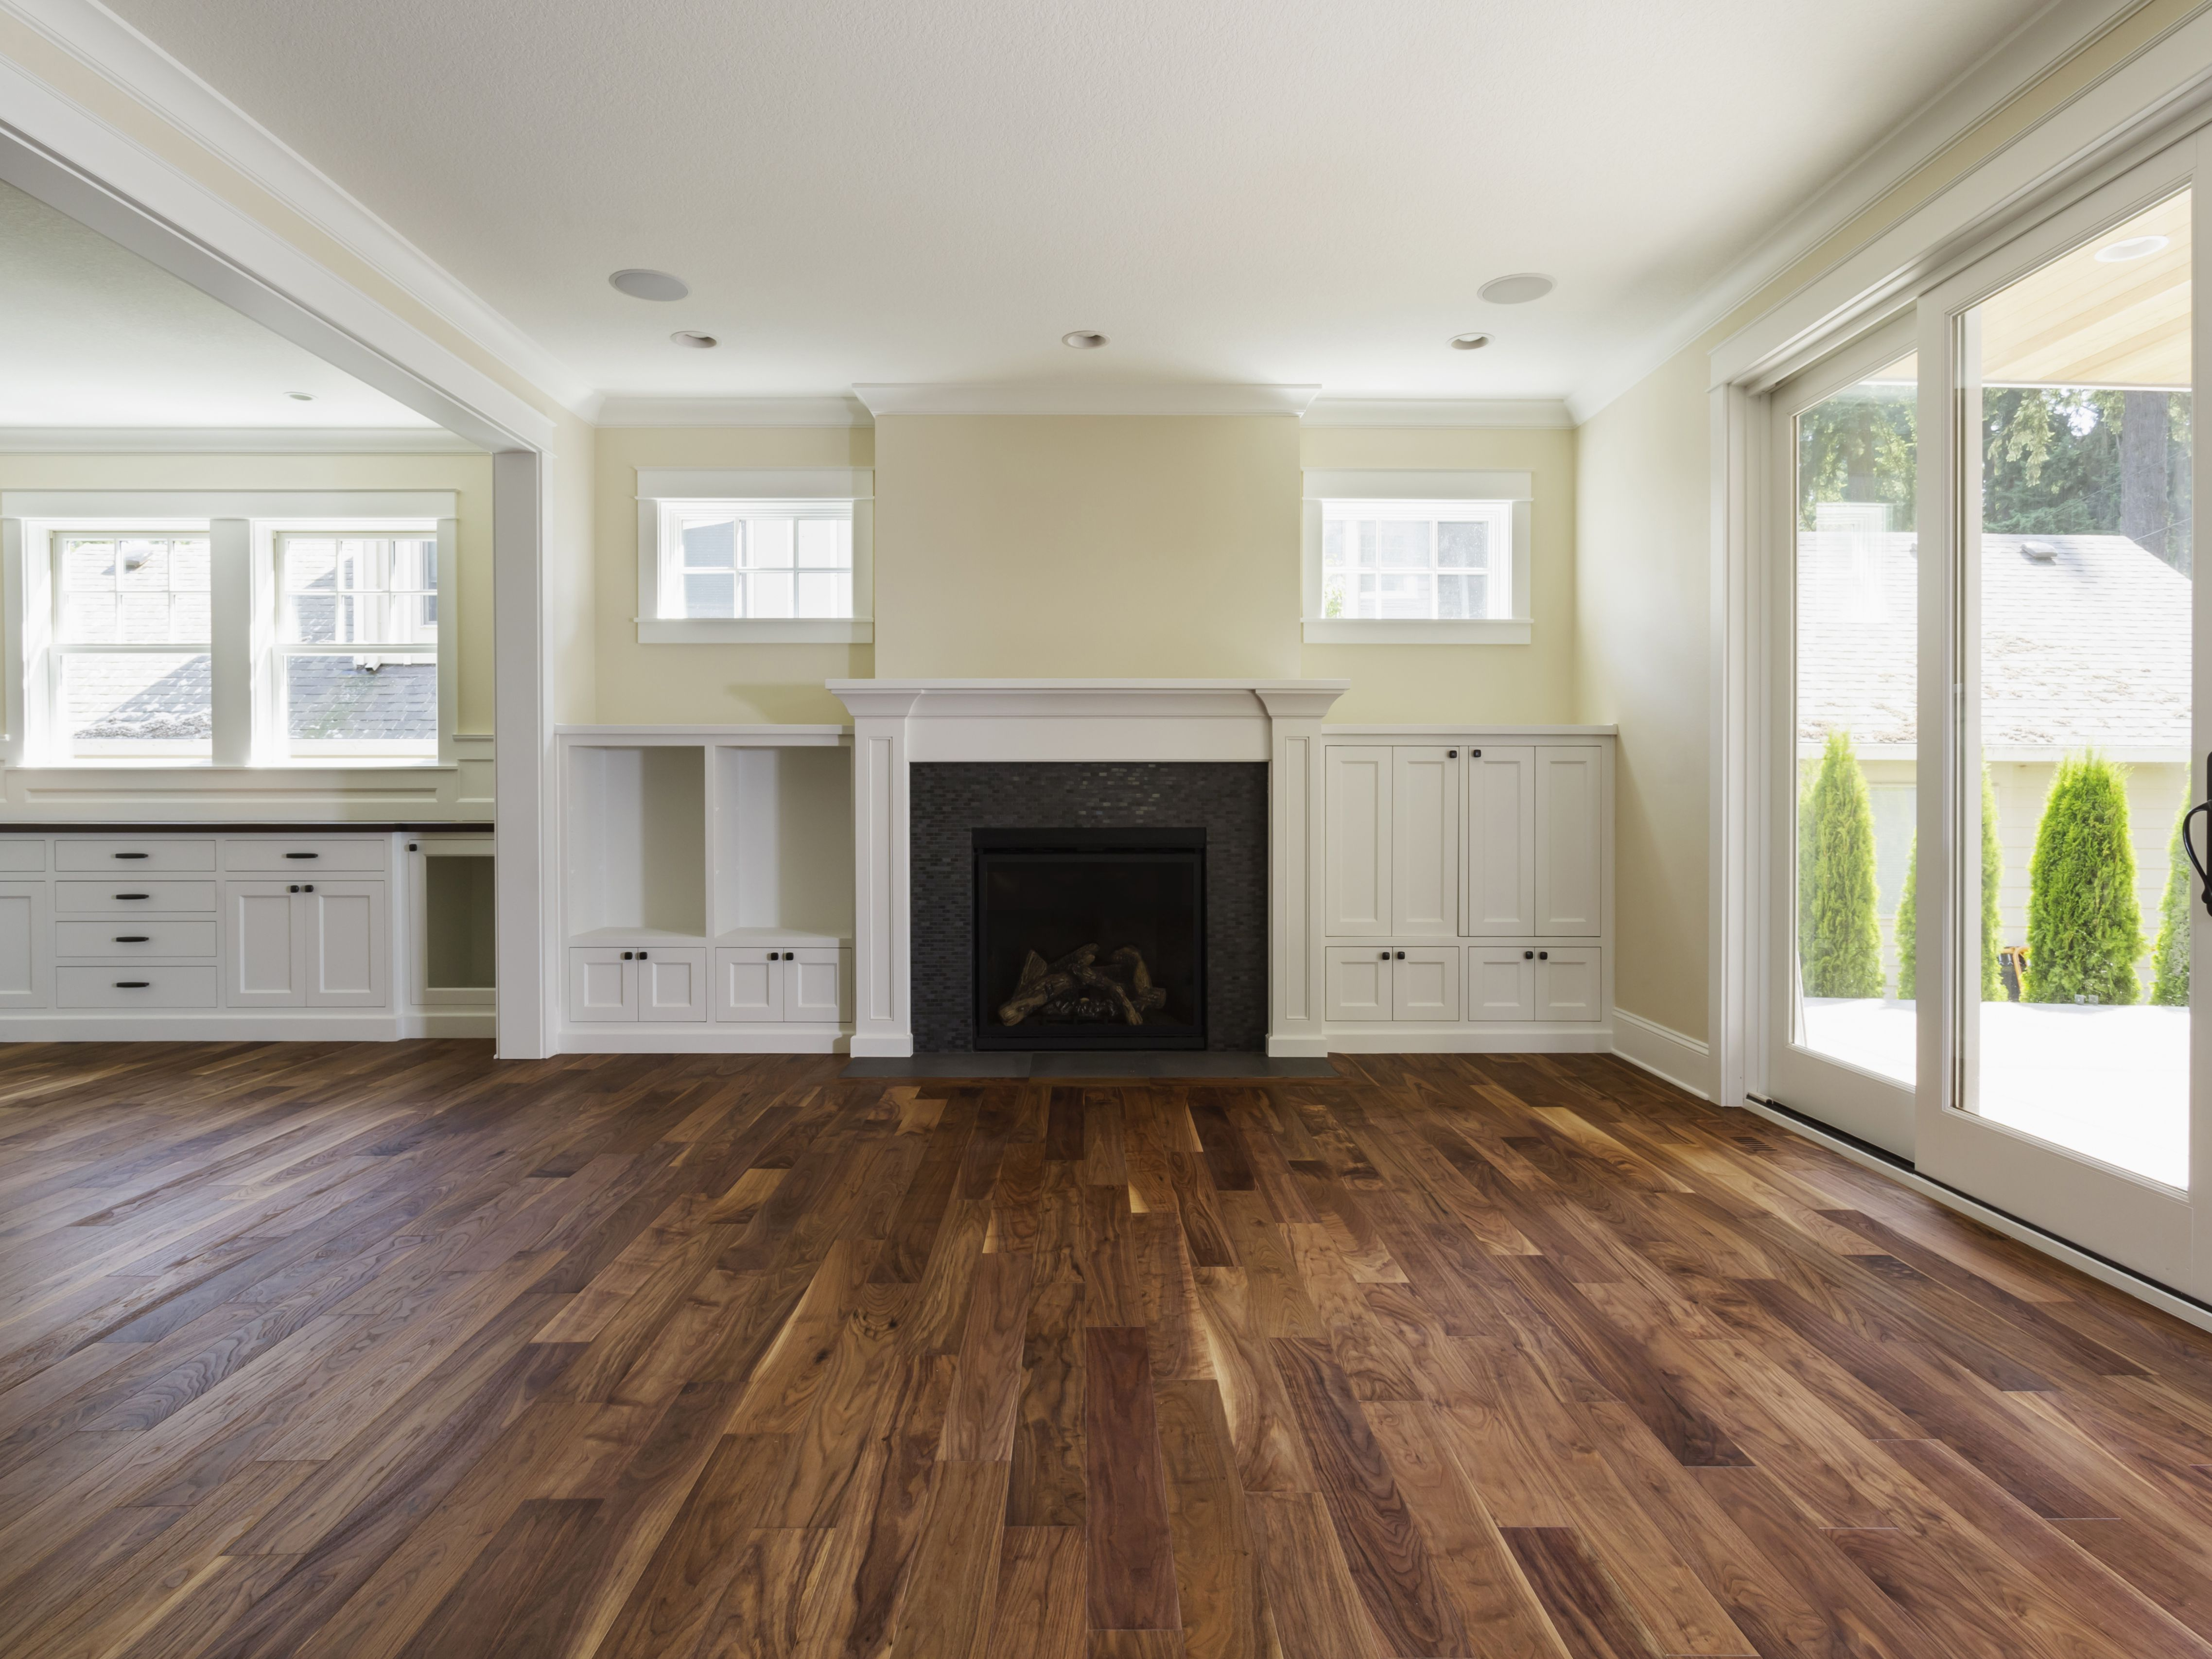 Prefinished Hardwood Flooring Pros And Cons